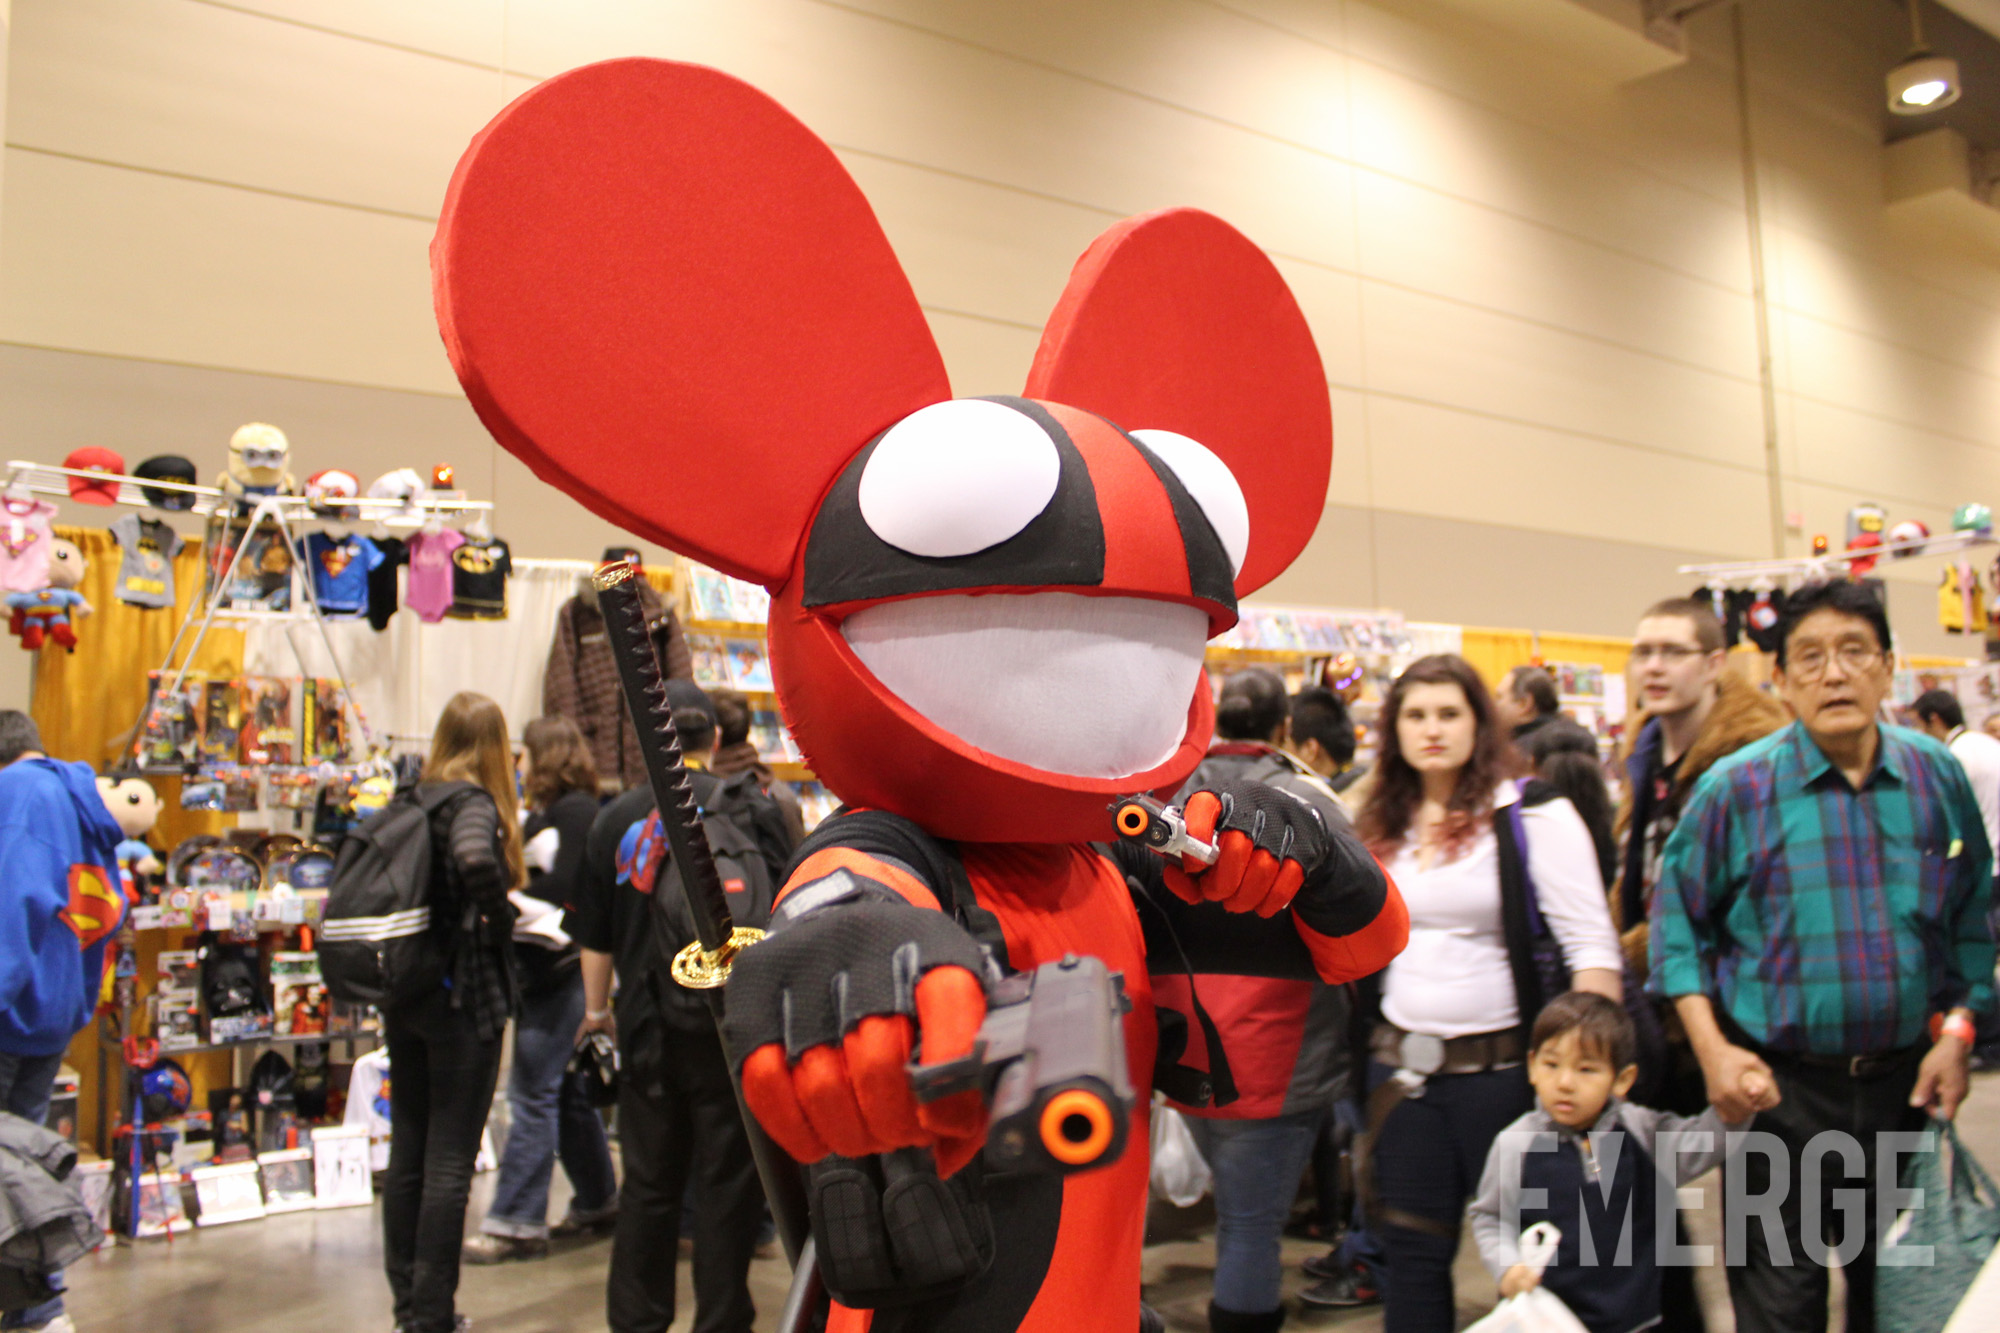 Deadmau5 or Dead Pool? either way, this was just hilarious to see